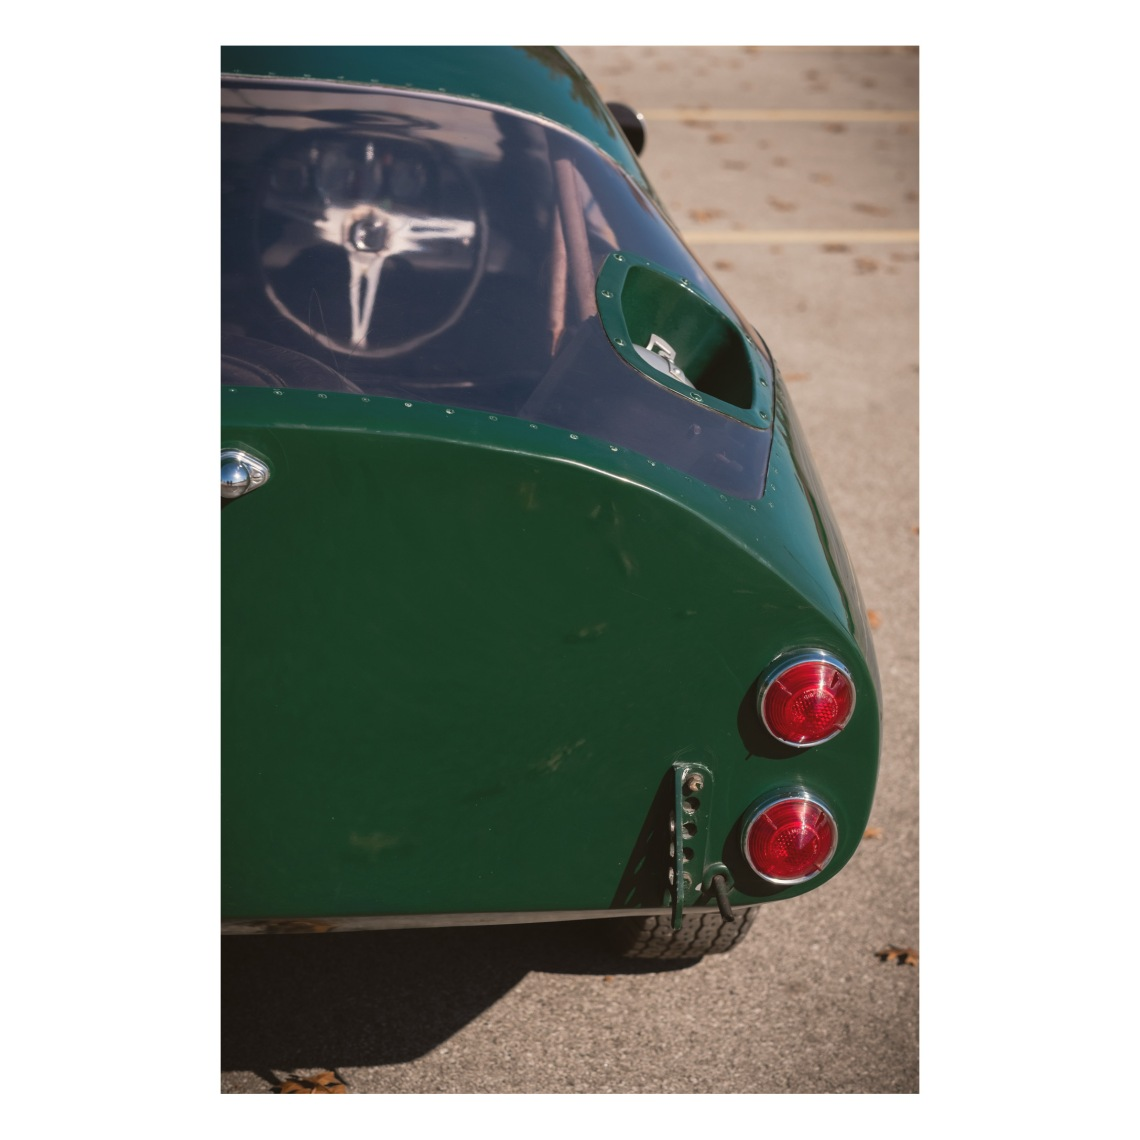 13_JCR_191208_Bonhams Austin Healey_ps_slide